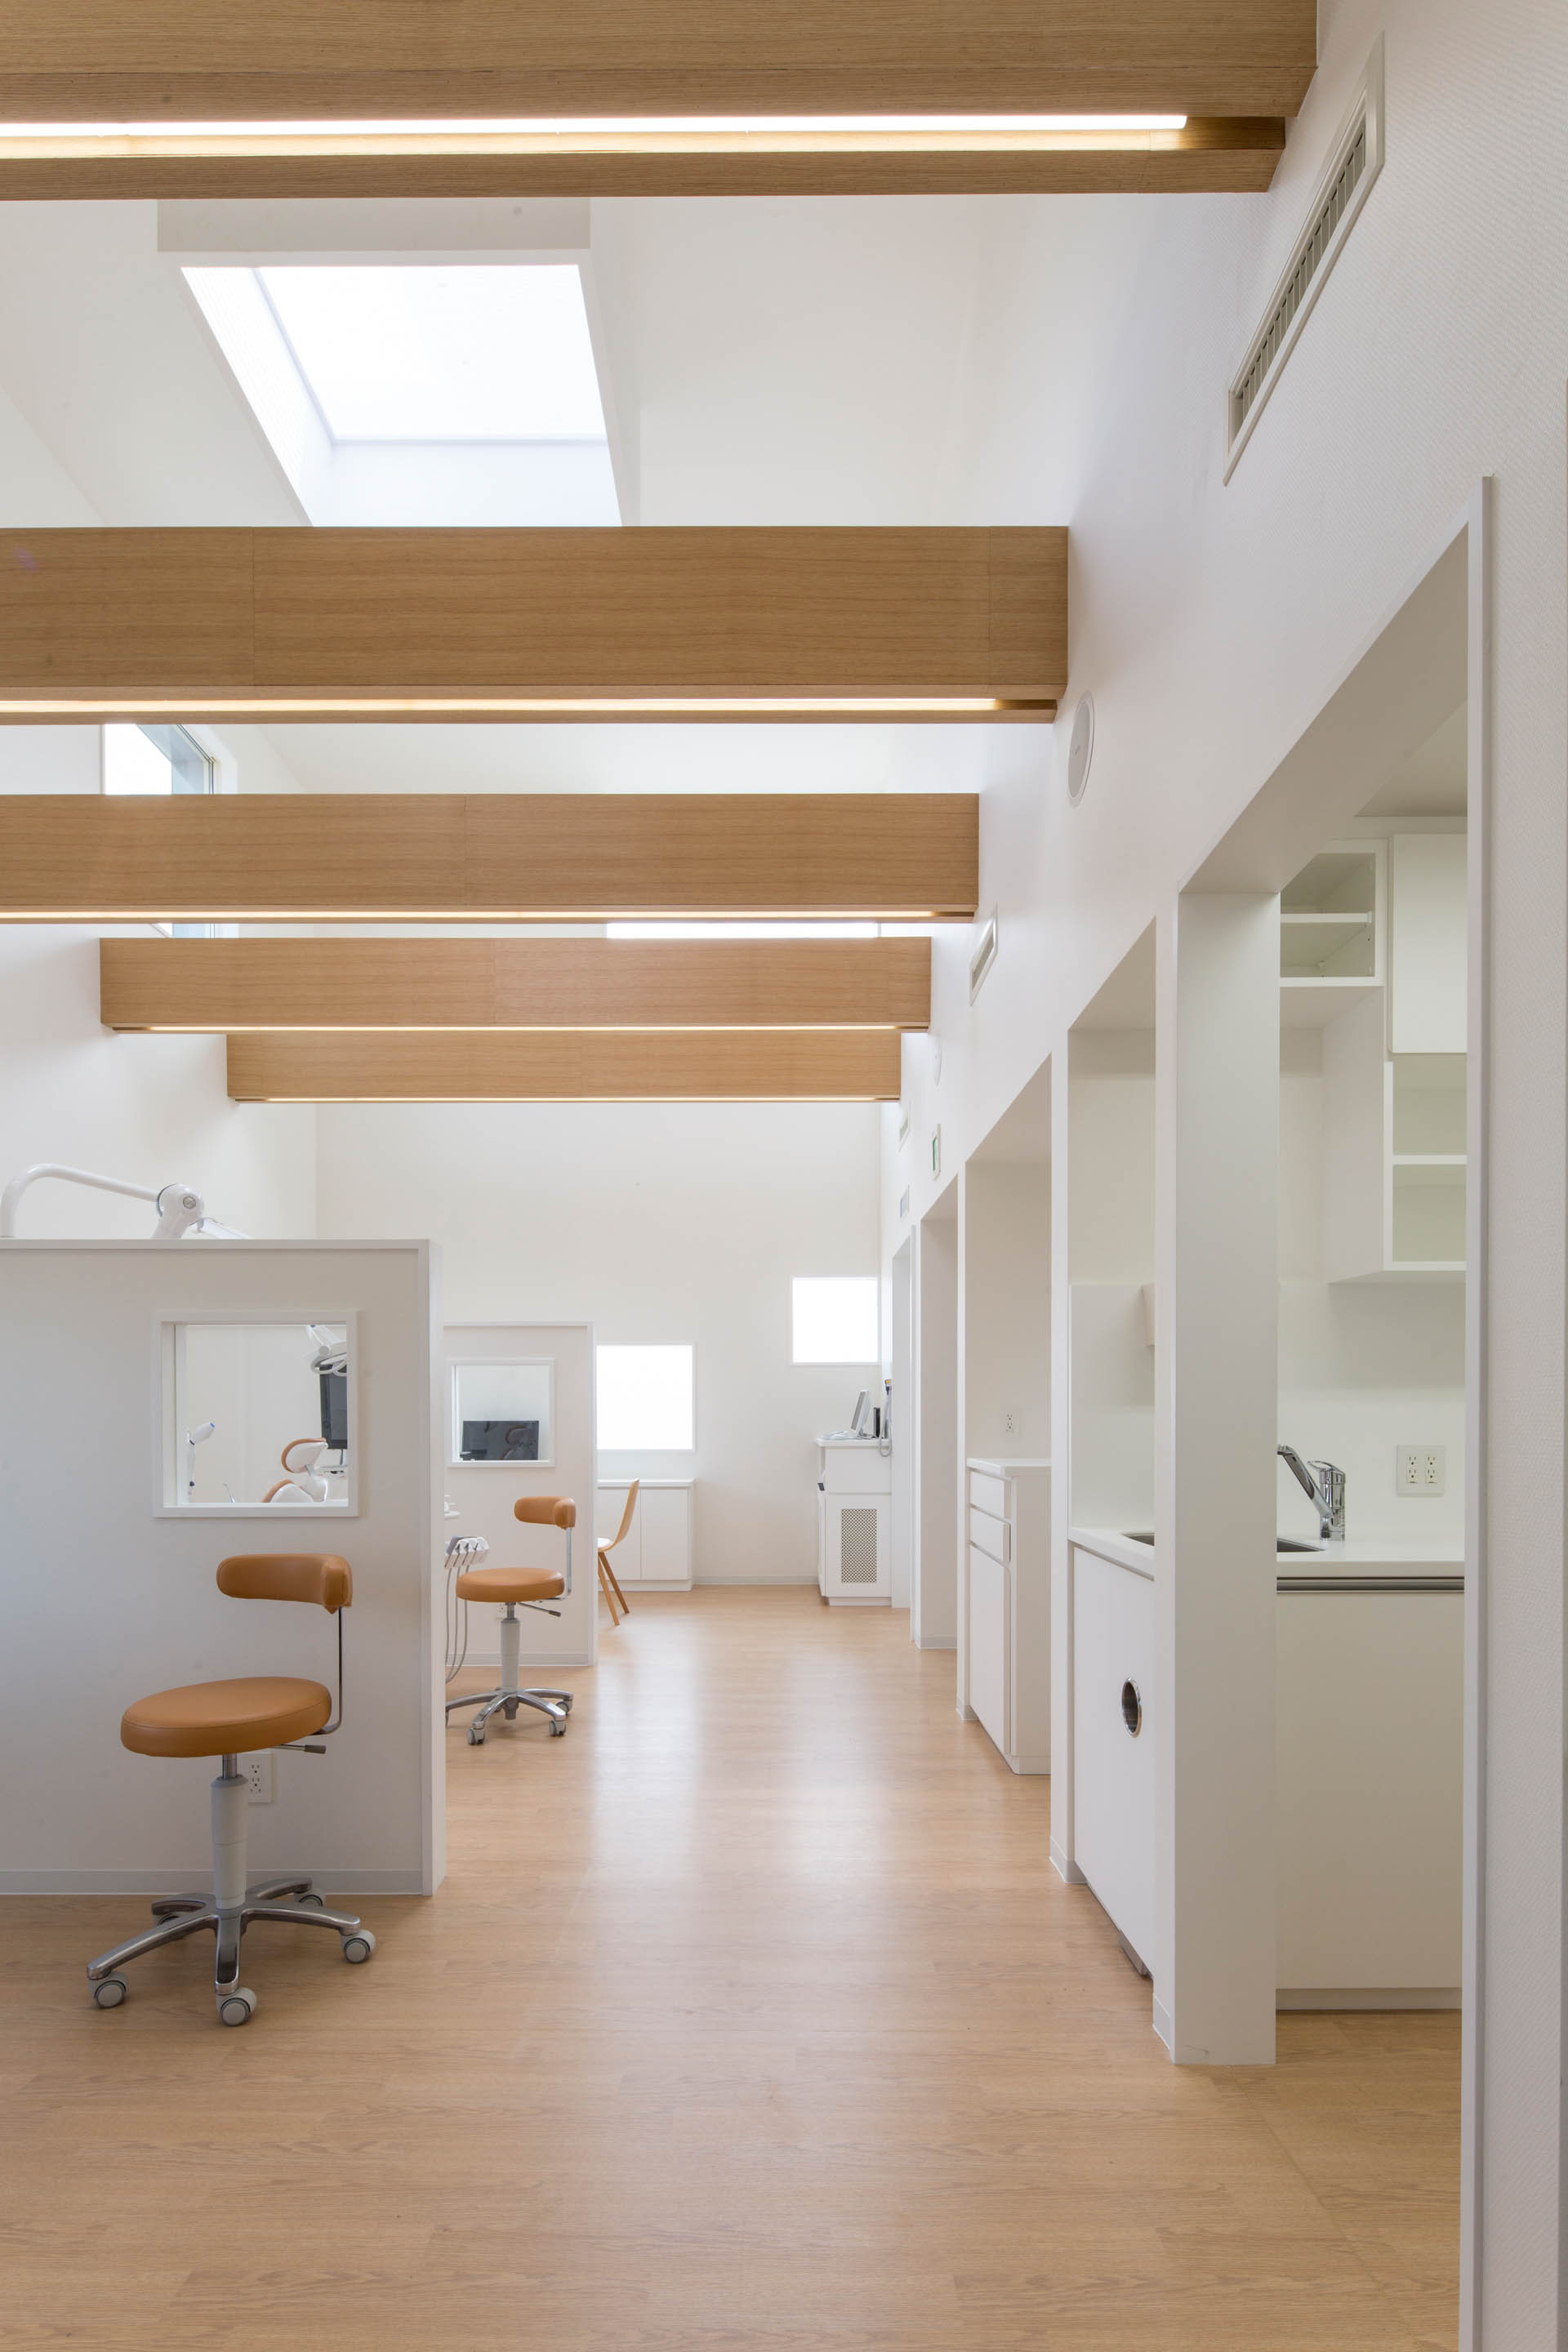 Gallery Of Yokoi Dental Clinic Iks Design Msd Office 3